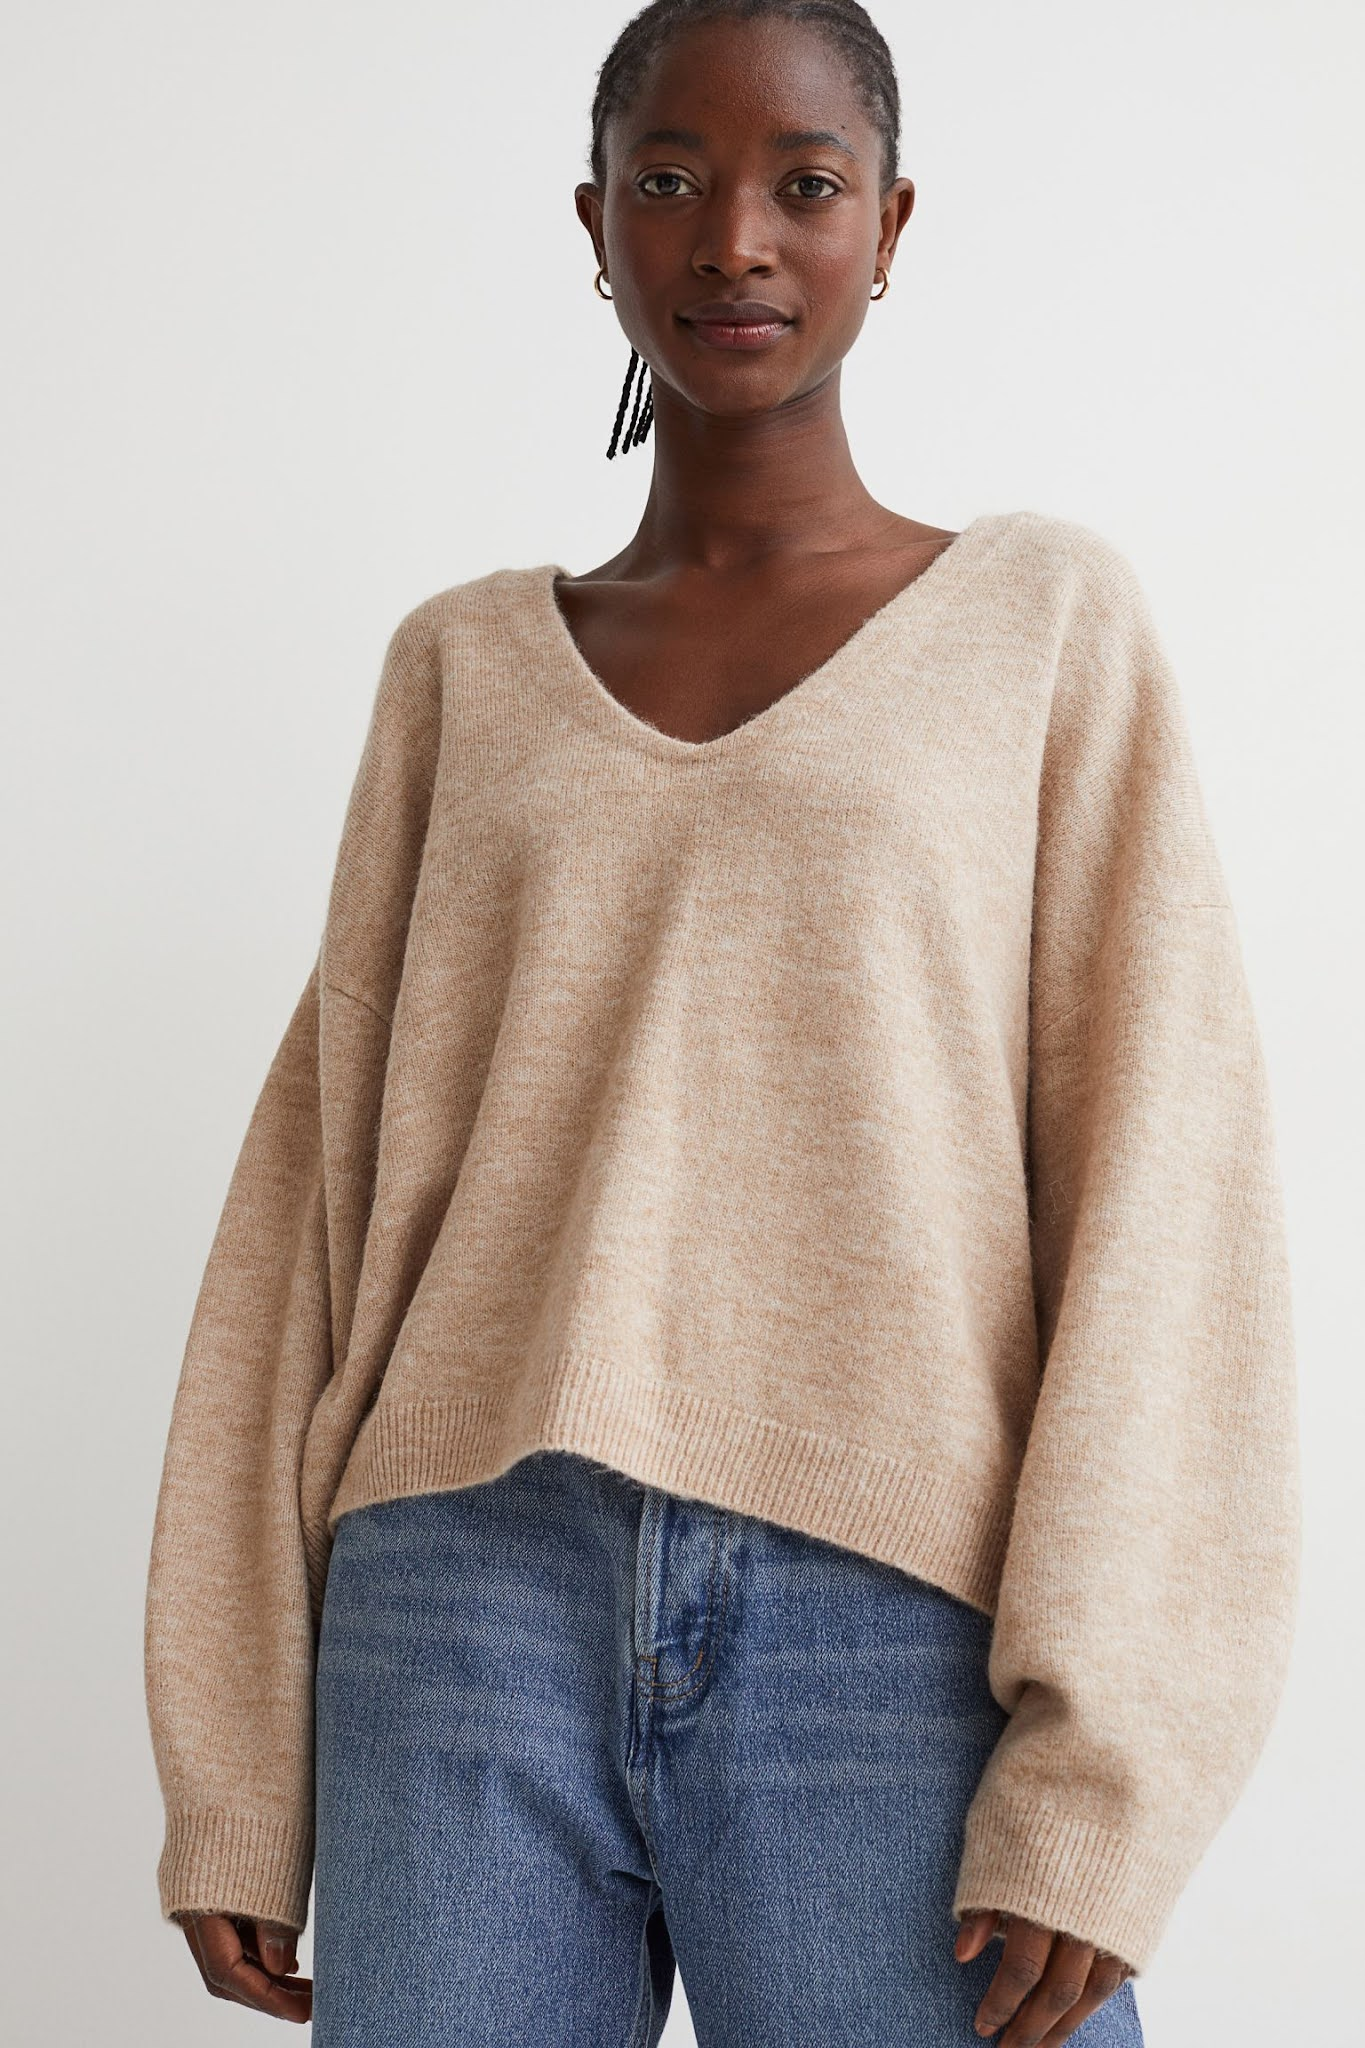 Budget-friendly under $100 fall outfit idea with a v-neck sweater, jeans, and sandals